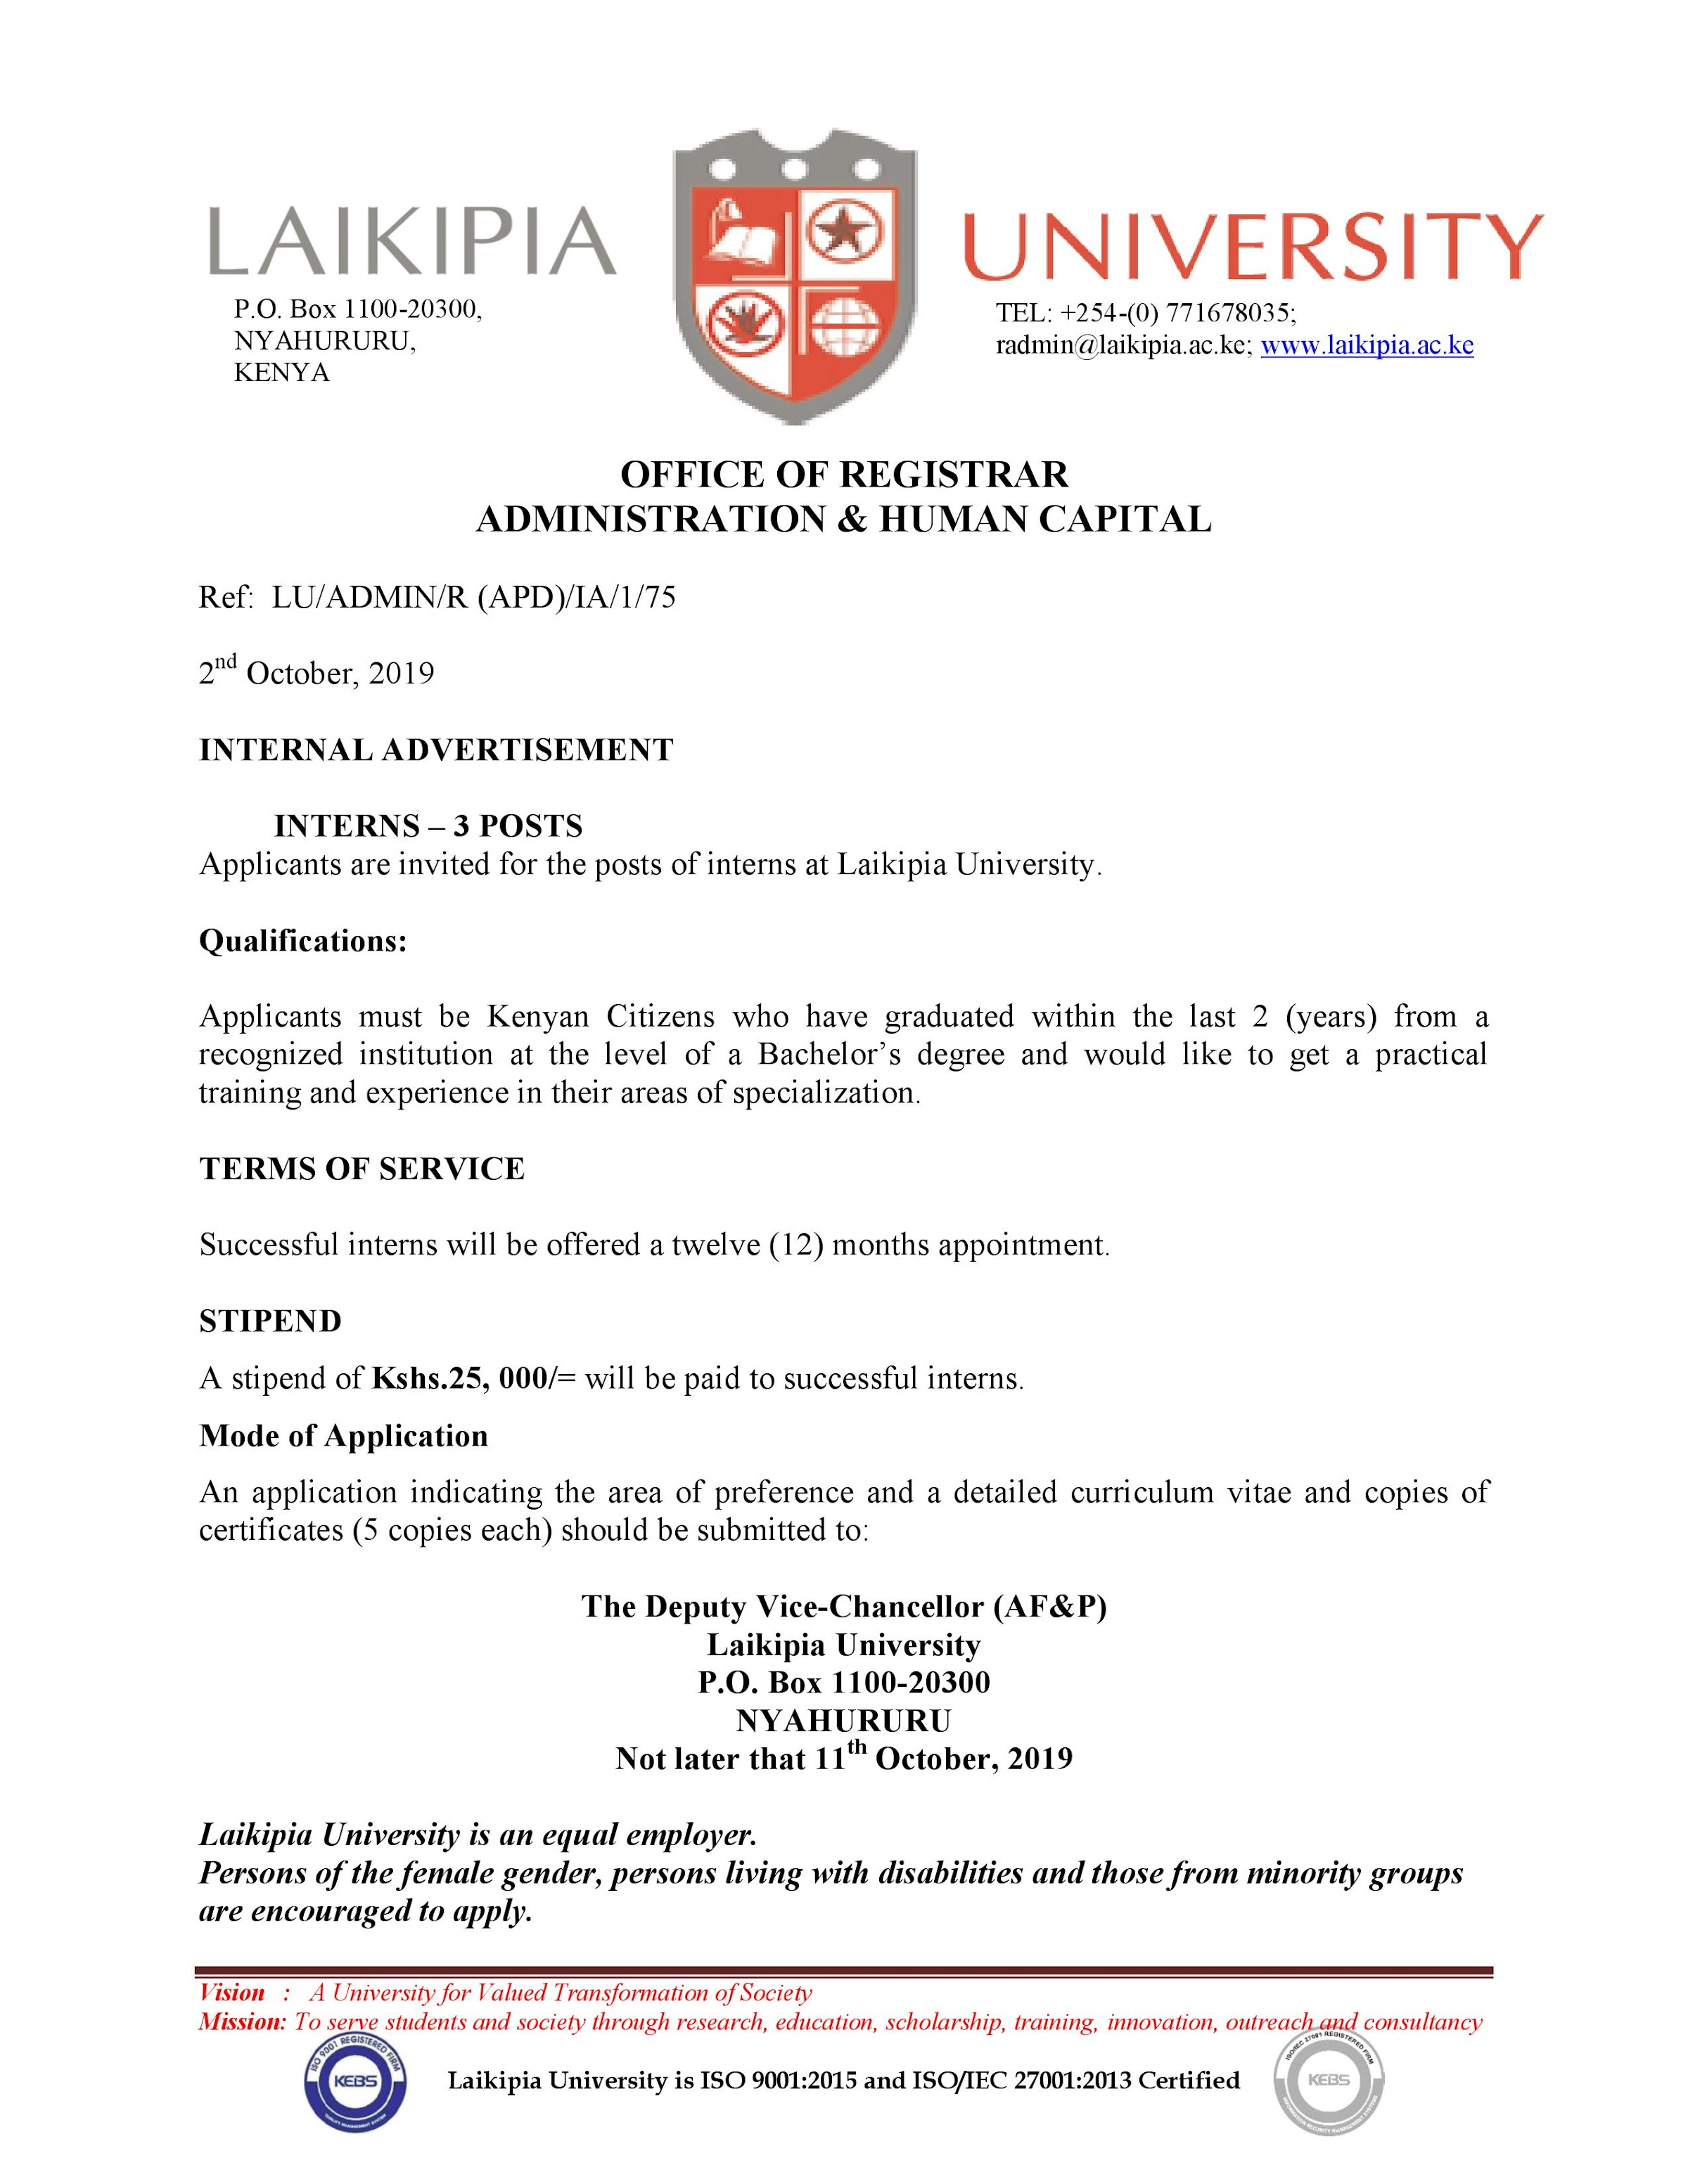 Three internship positions up for grabs at Laikipia University